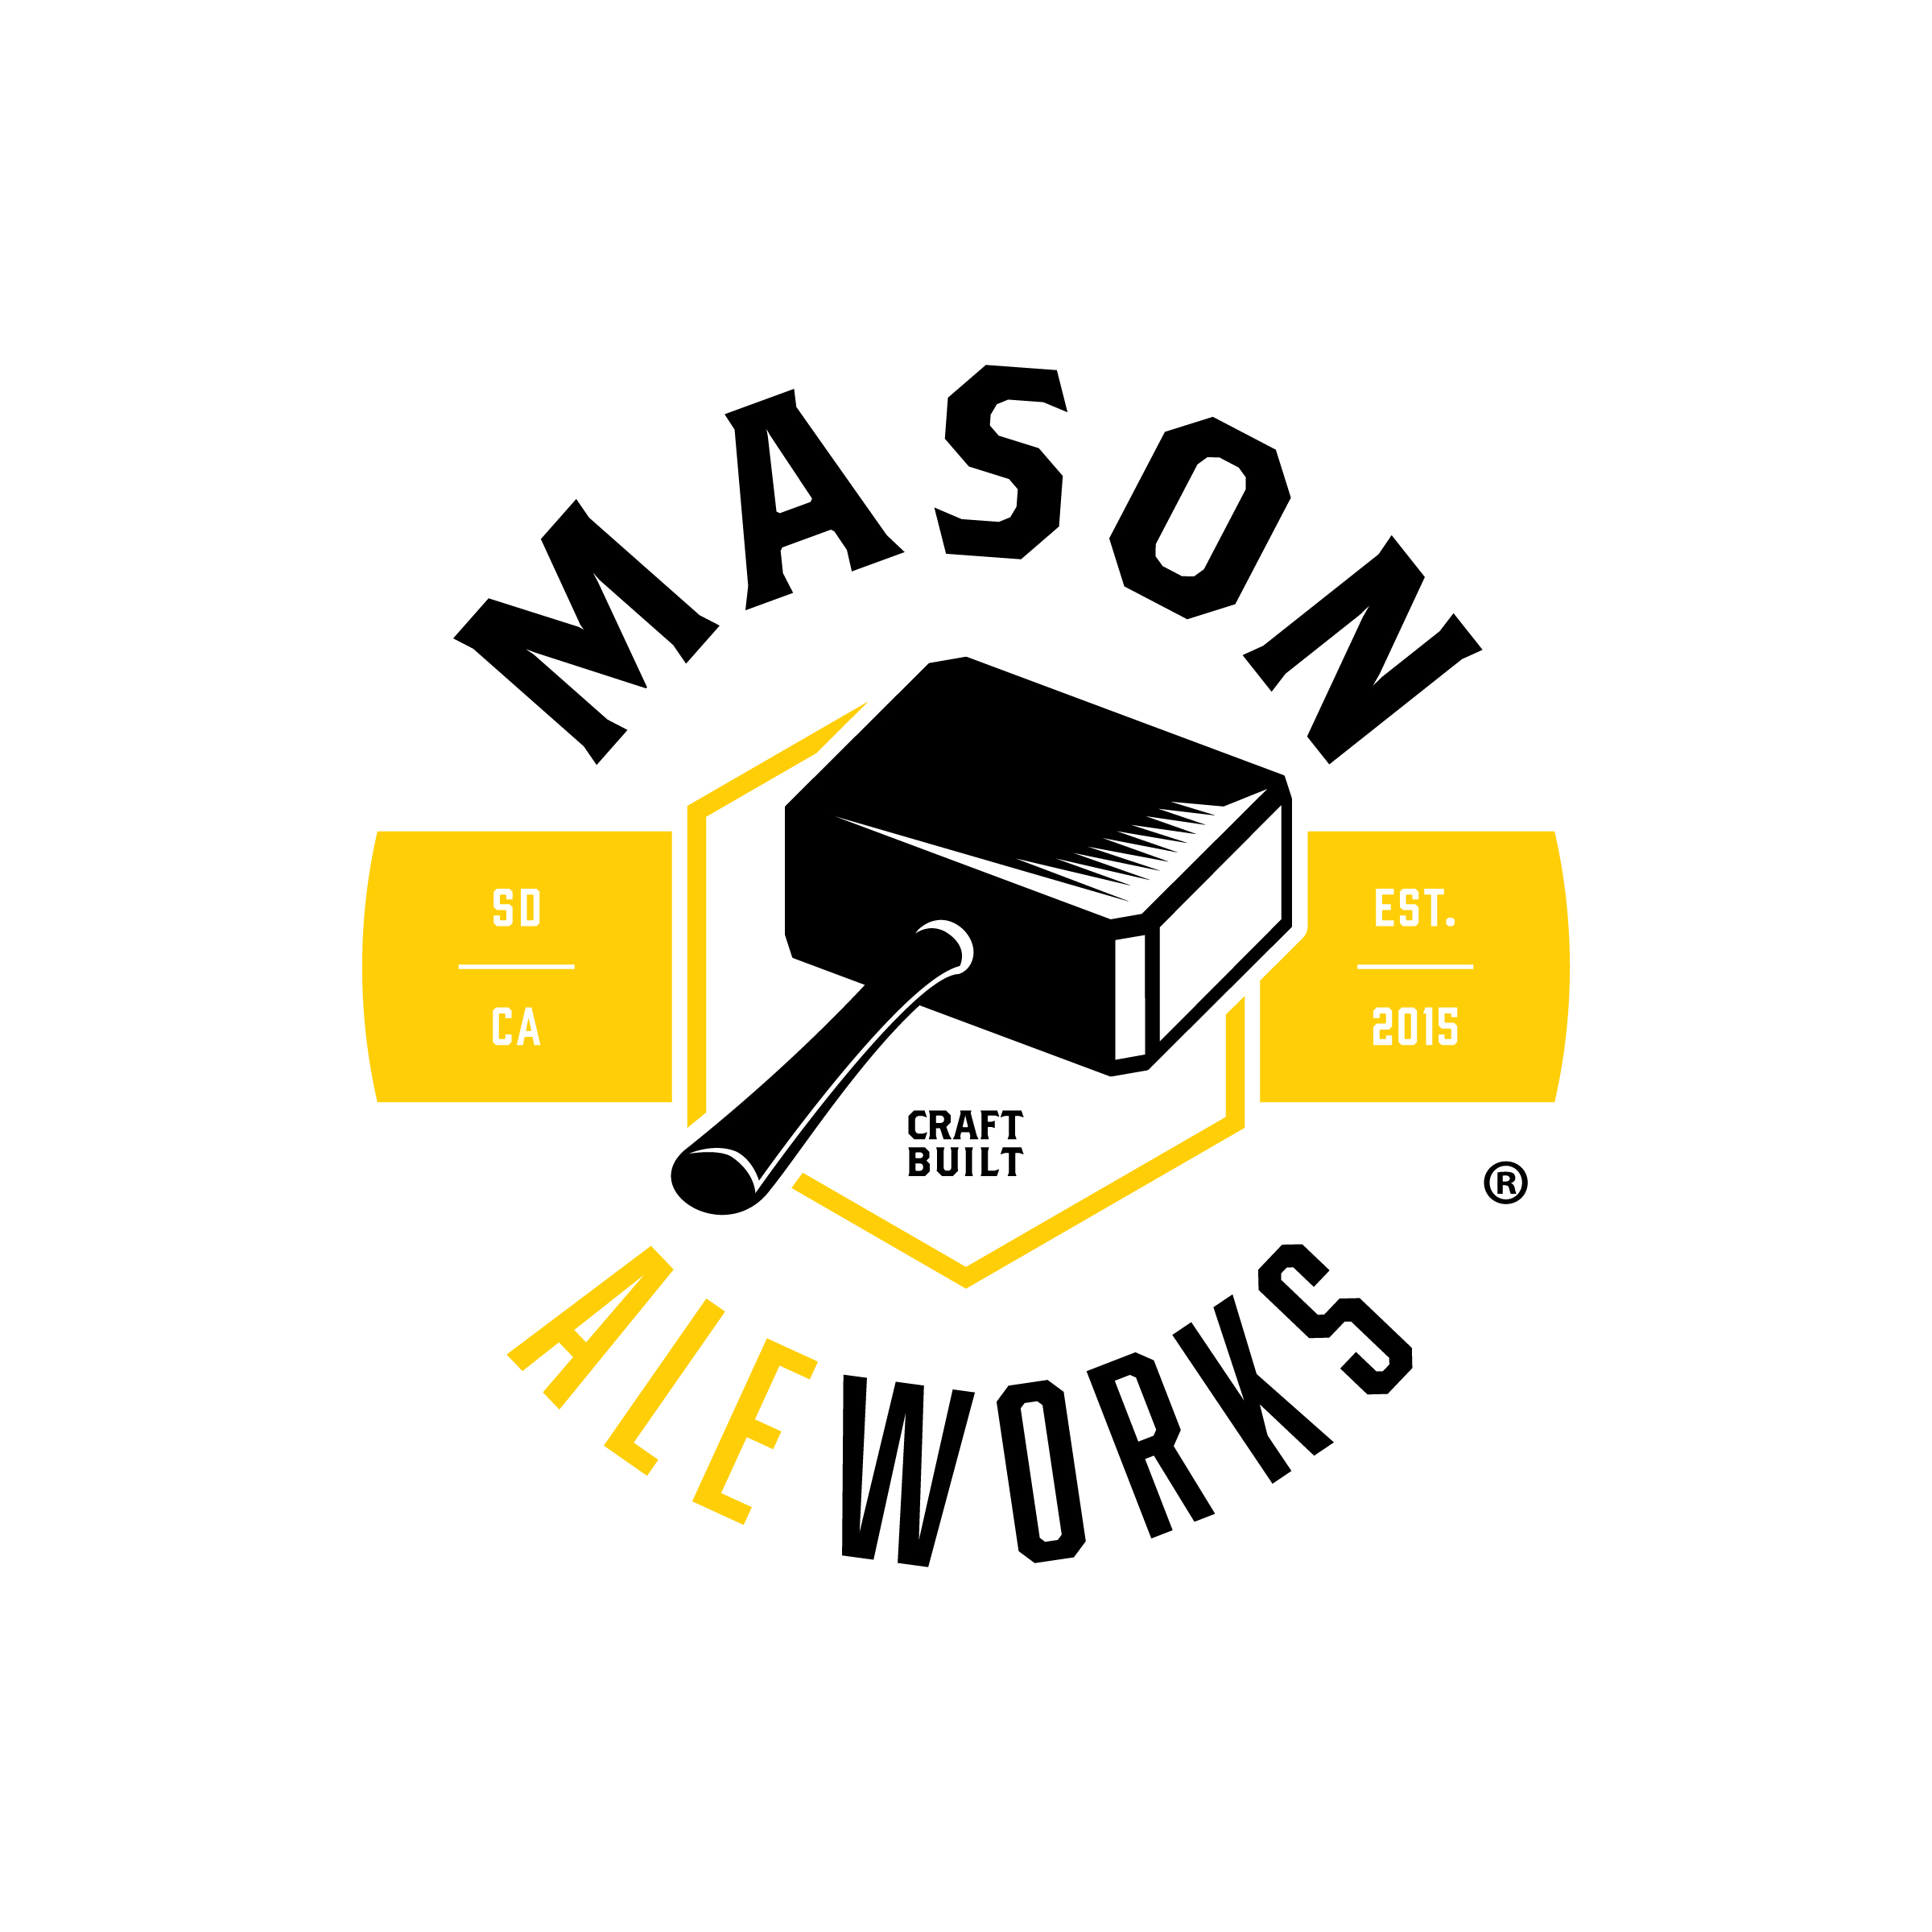 craft beer & wine - Featuringmason aleworks craft beers- - - - - - - - - -JambiWest coast IPA6.7% abvHops: Simcoe, Amarillo,Mosaic, Citra, CascadeAroma: Lemon, Grapefruit& Navel orangeTaste: Dry finish with anaggressive hop finish- - - - - - - - - -Willy TimeBelgian style white ale5.0% abvBrewed with bitter orange peeland corianderHops: german magnumAroma: citrus and bananawith notes of cloveTaste: crisp and refreshing ale- - - - - - - - - -Cash ImperialImperial coffee stout9.4% abvHops: german magnumAroma: chocolate, oats andpronounced coffeeTaste: rich mocha flavors- - - - - - - - - -James H. TrotterSour - Berliner Weisse4.5% ABVNotes of Peach Cobbler, Honey,with a soaring high acidity